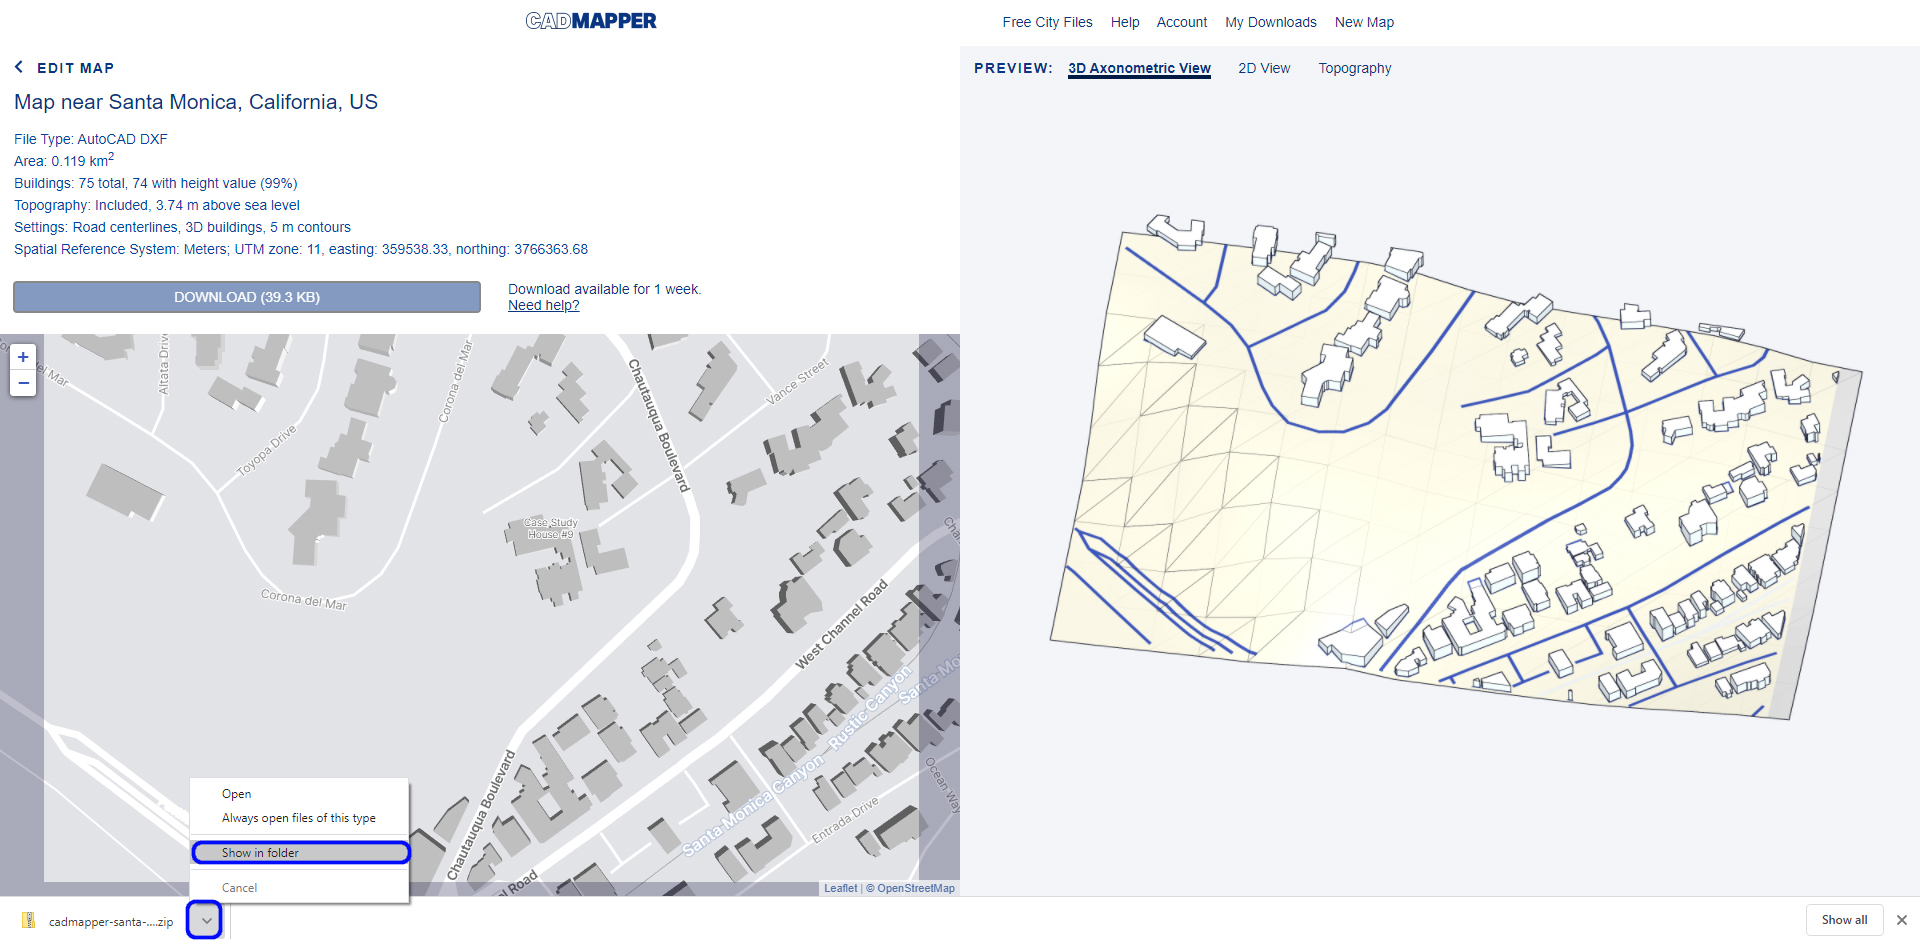 It shows the CAD mapper website for the Eames house project and how to open the downloaded folder.